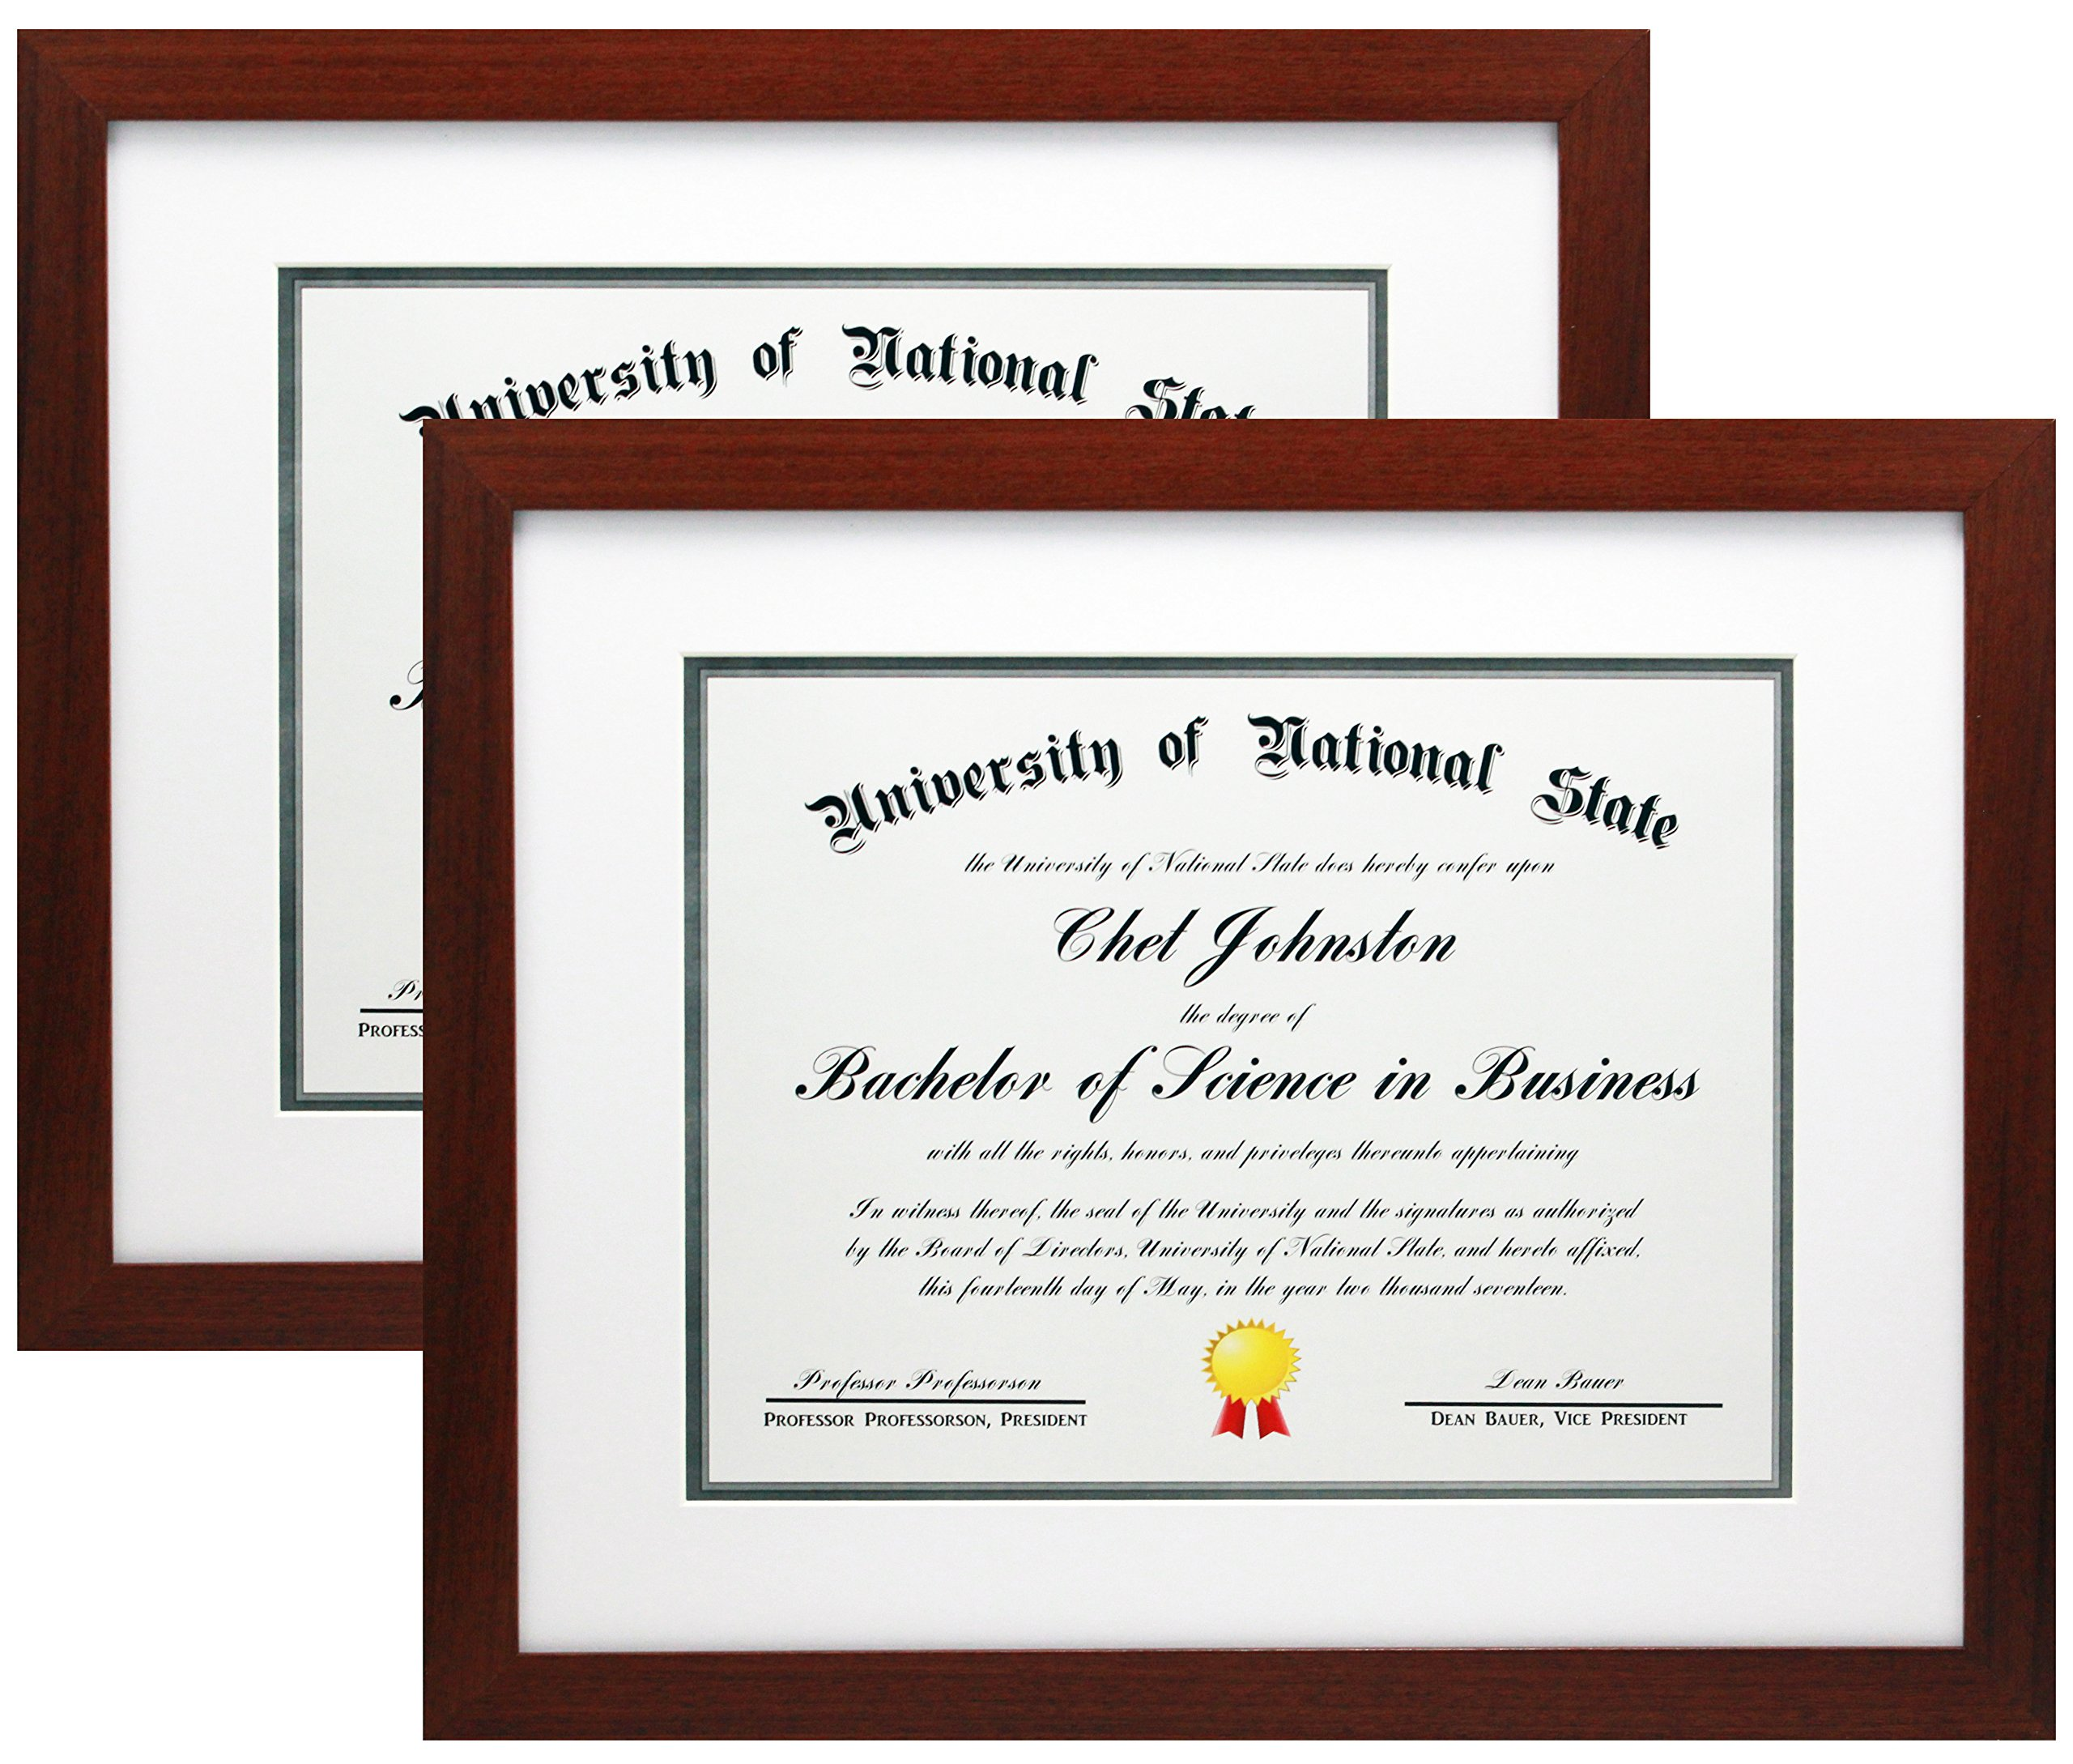 11x14 Mahogany Certificate Document Frame Mat to 8.5x11 or 8x10-2 Pack - Wide Molding - Includes Attached Hanging Hardware and Desktop Easel - Display Certificates, Documents, Diploma, Photo 2-Pack